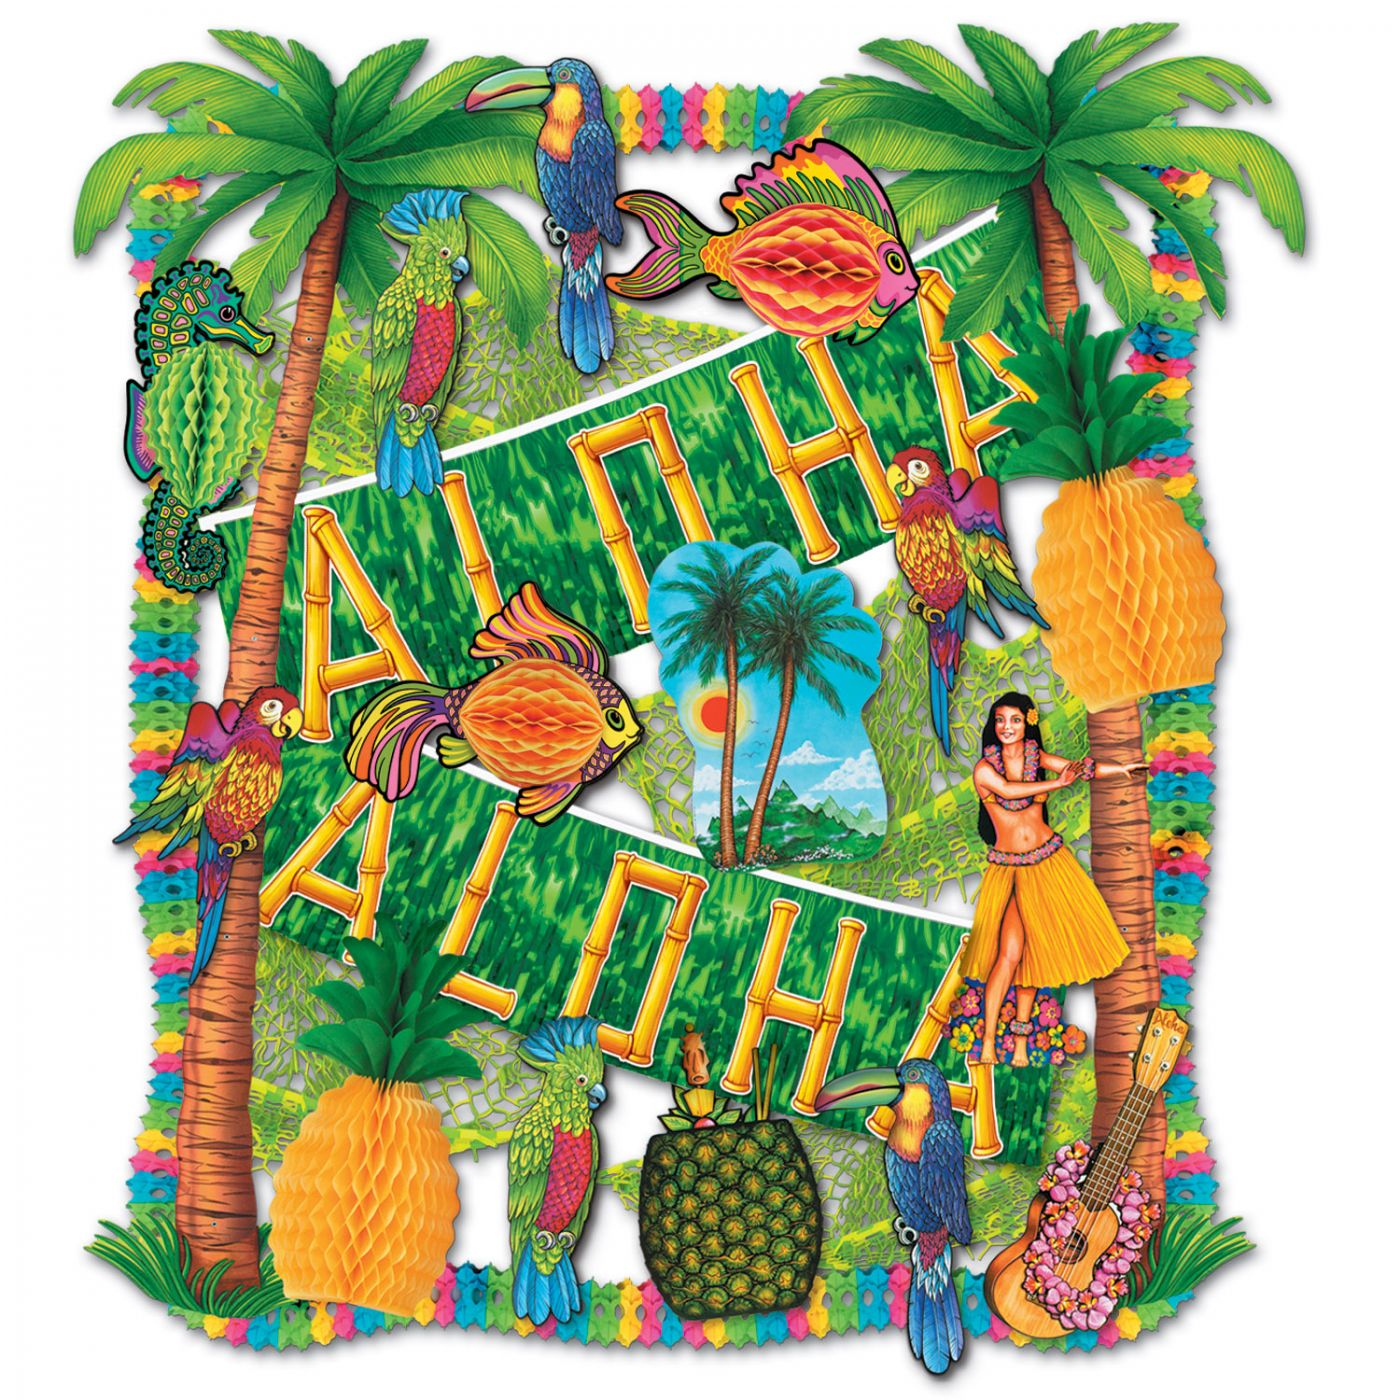 Luau Decorating Kit - 27 Pcs (1) image